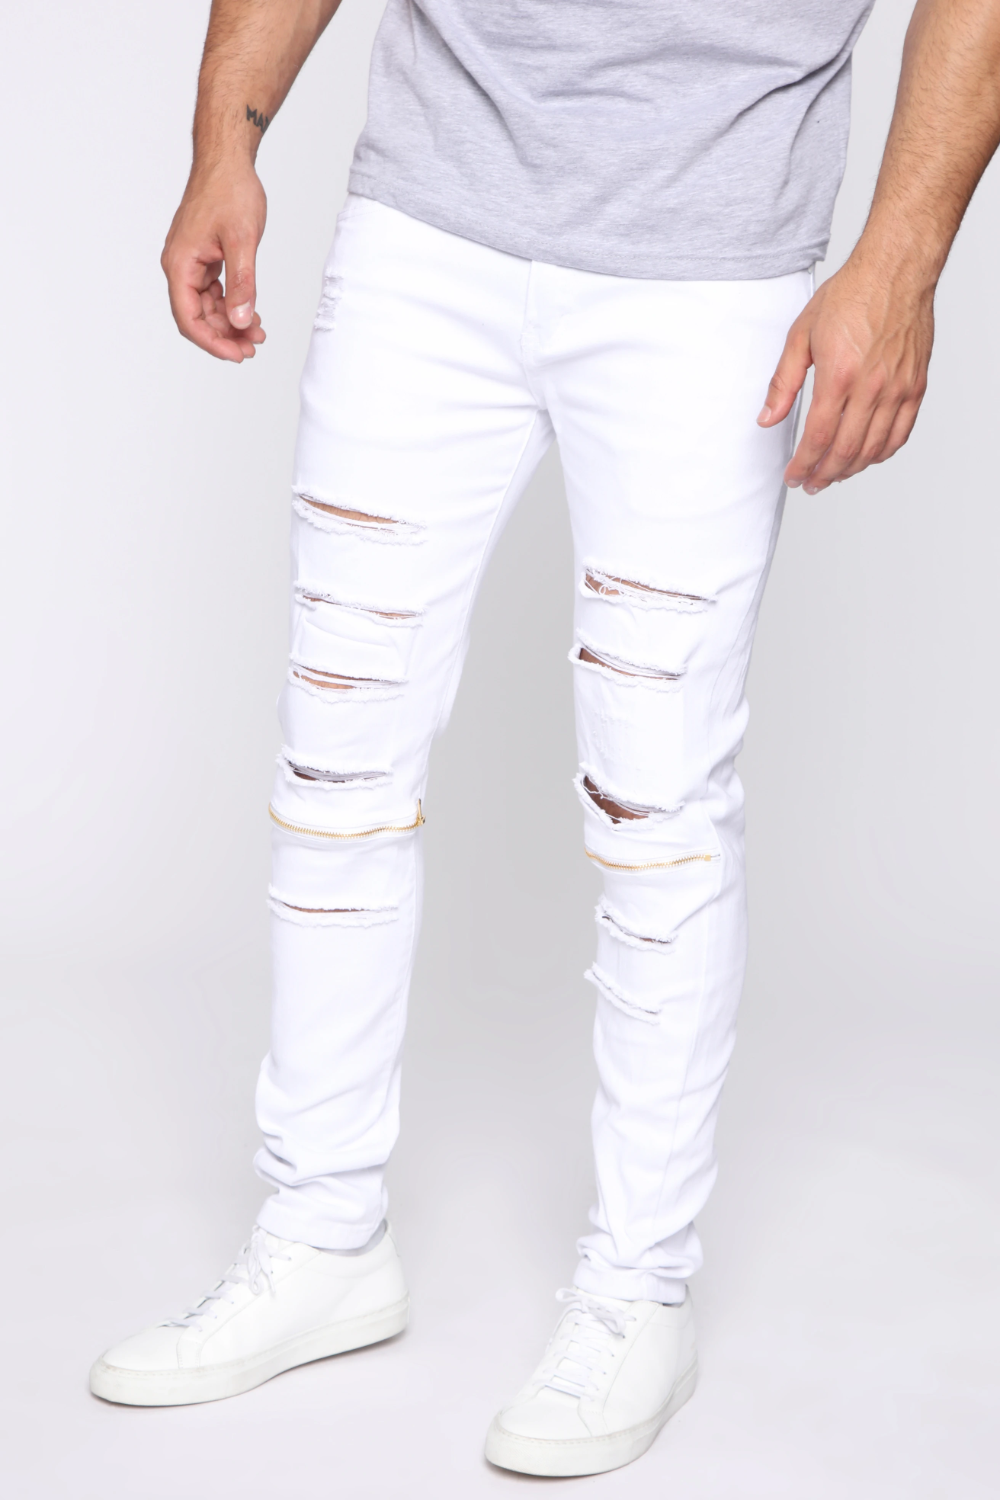 Capable Skinny Jeans White In 2021 White Jeans Men Mens Jeans Guide White Jeans [ 1500 x 1000 Pixel ]